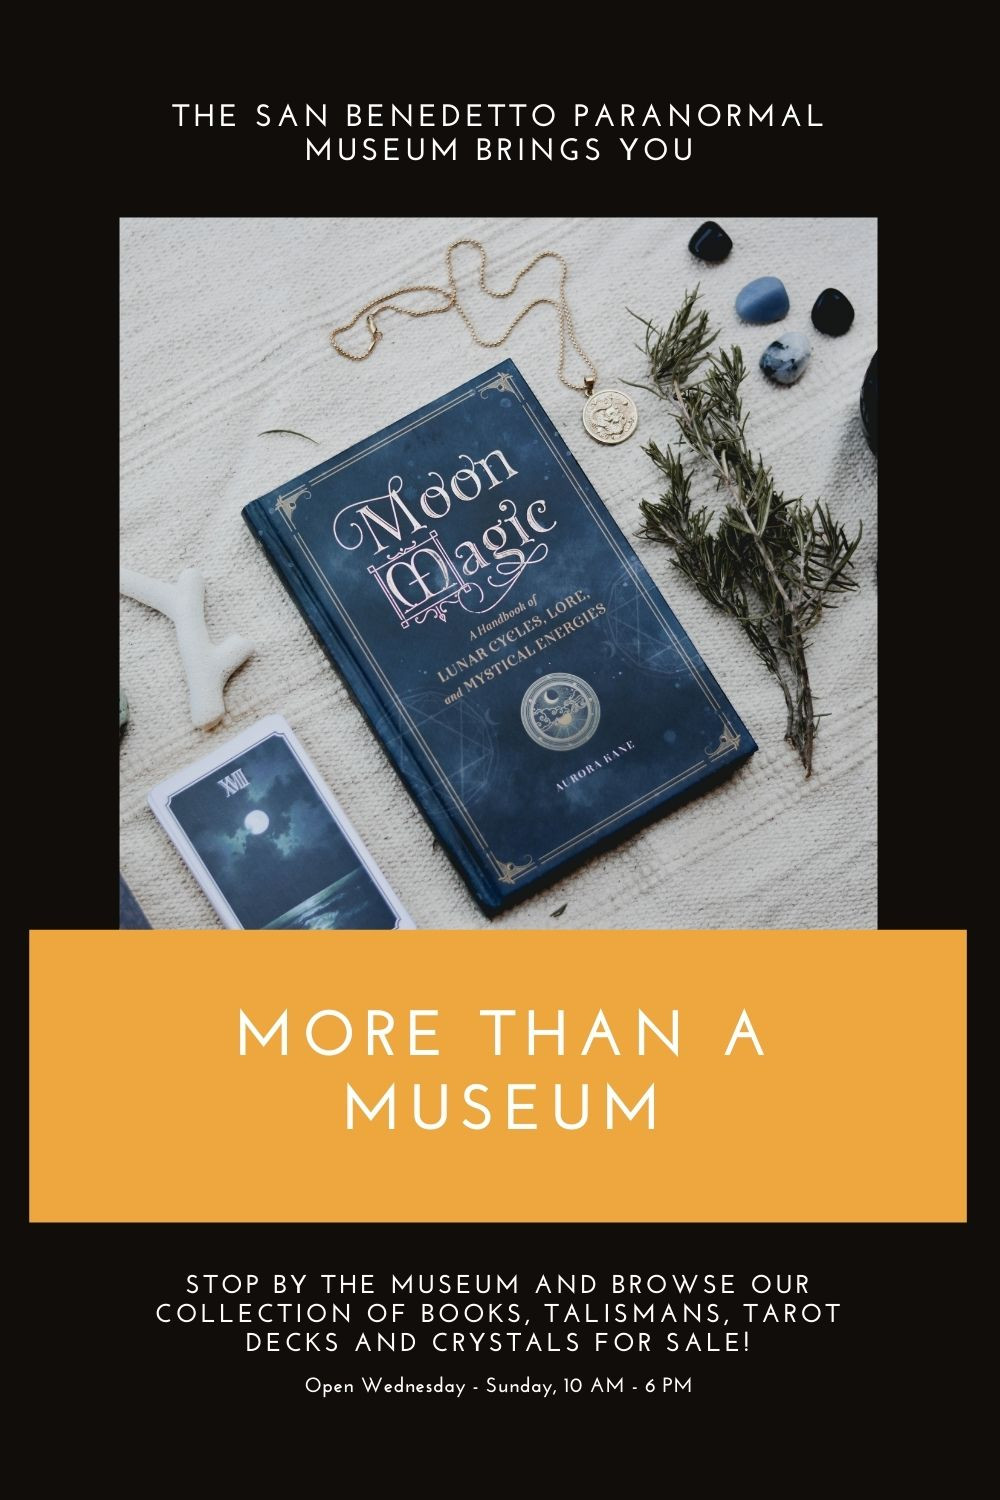 Stop by the museum and browse our collection of books, tarot decks, and more!